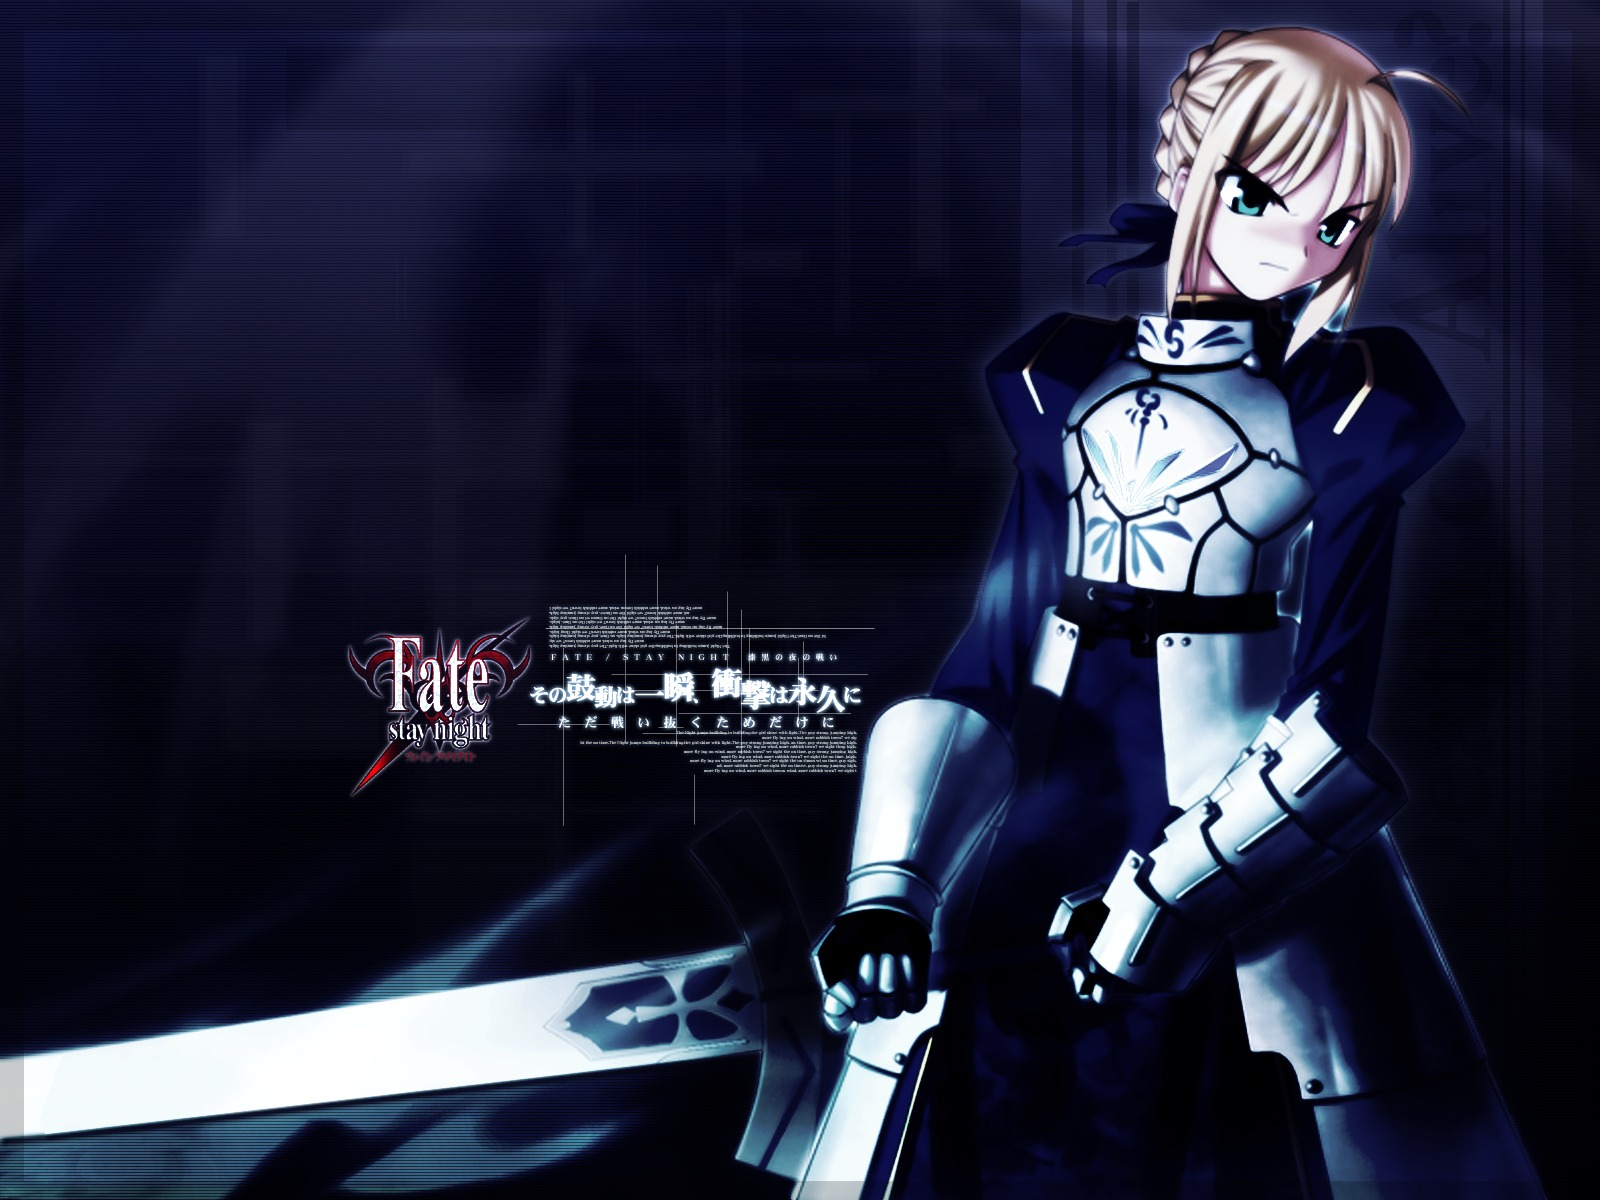 Fate Stay Night Saber Wallpaper   1600x1200 1600x1200